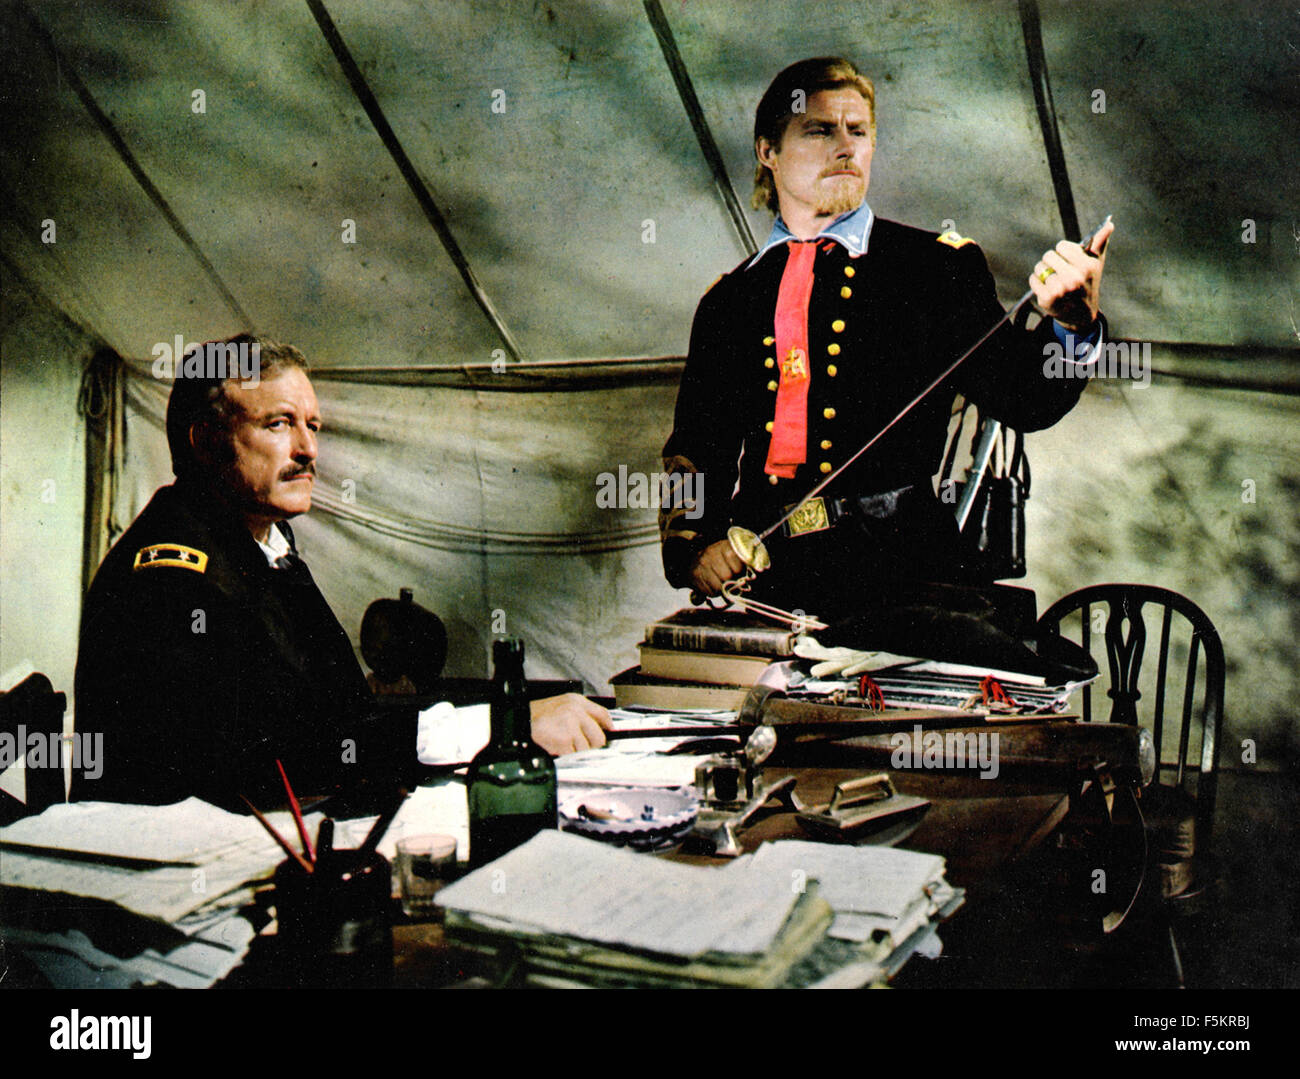 American actors Lawrence Tierney and Robert Shaw in a scene from the film 'Custer of the West' - Stock Image